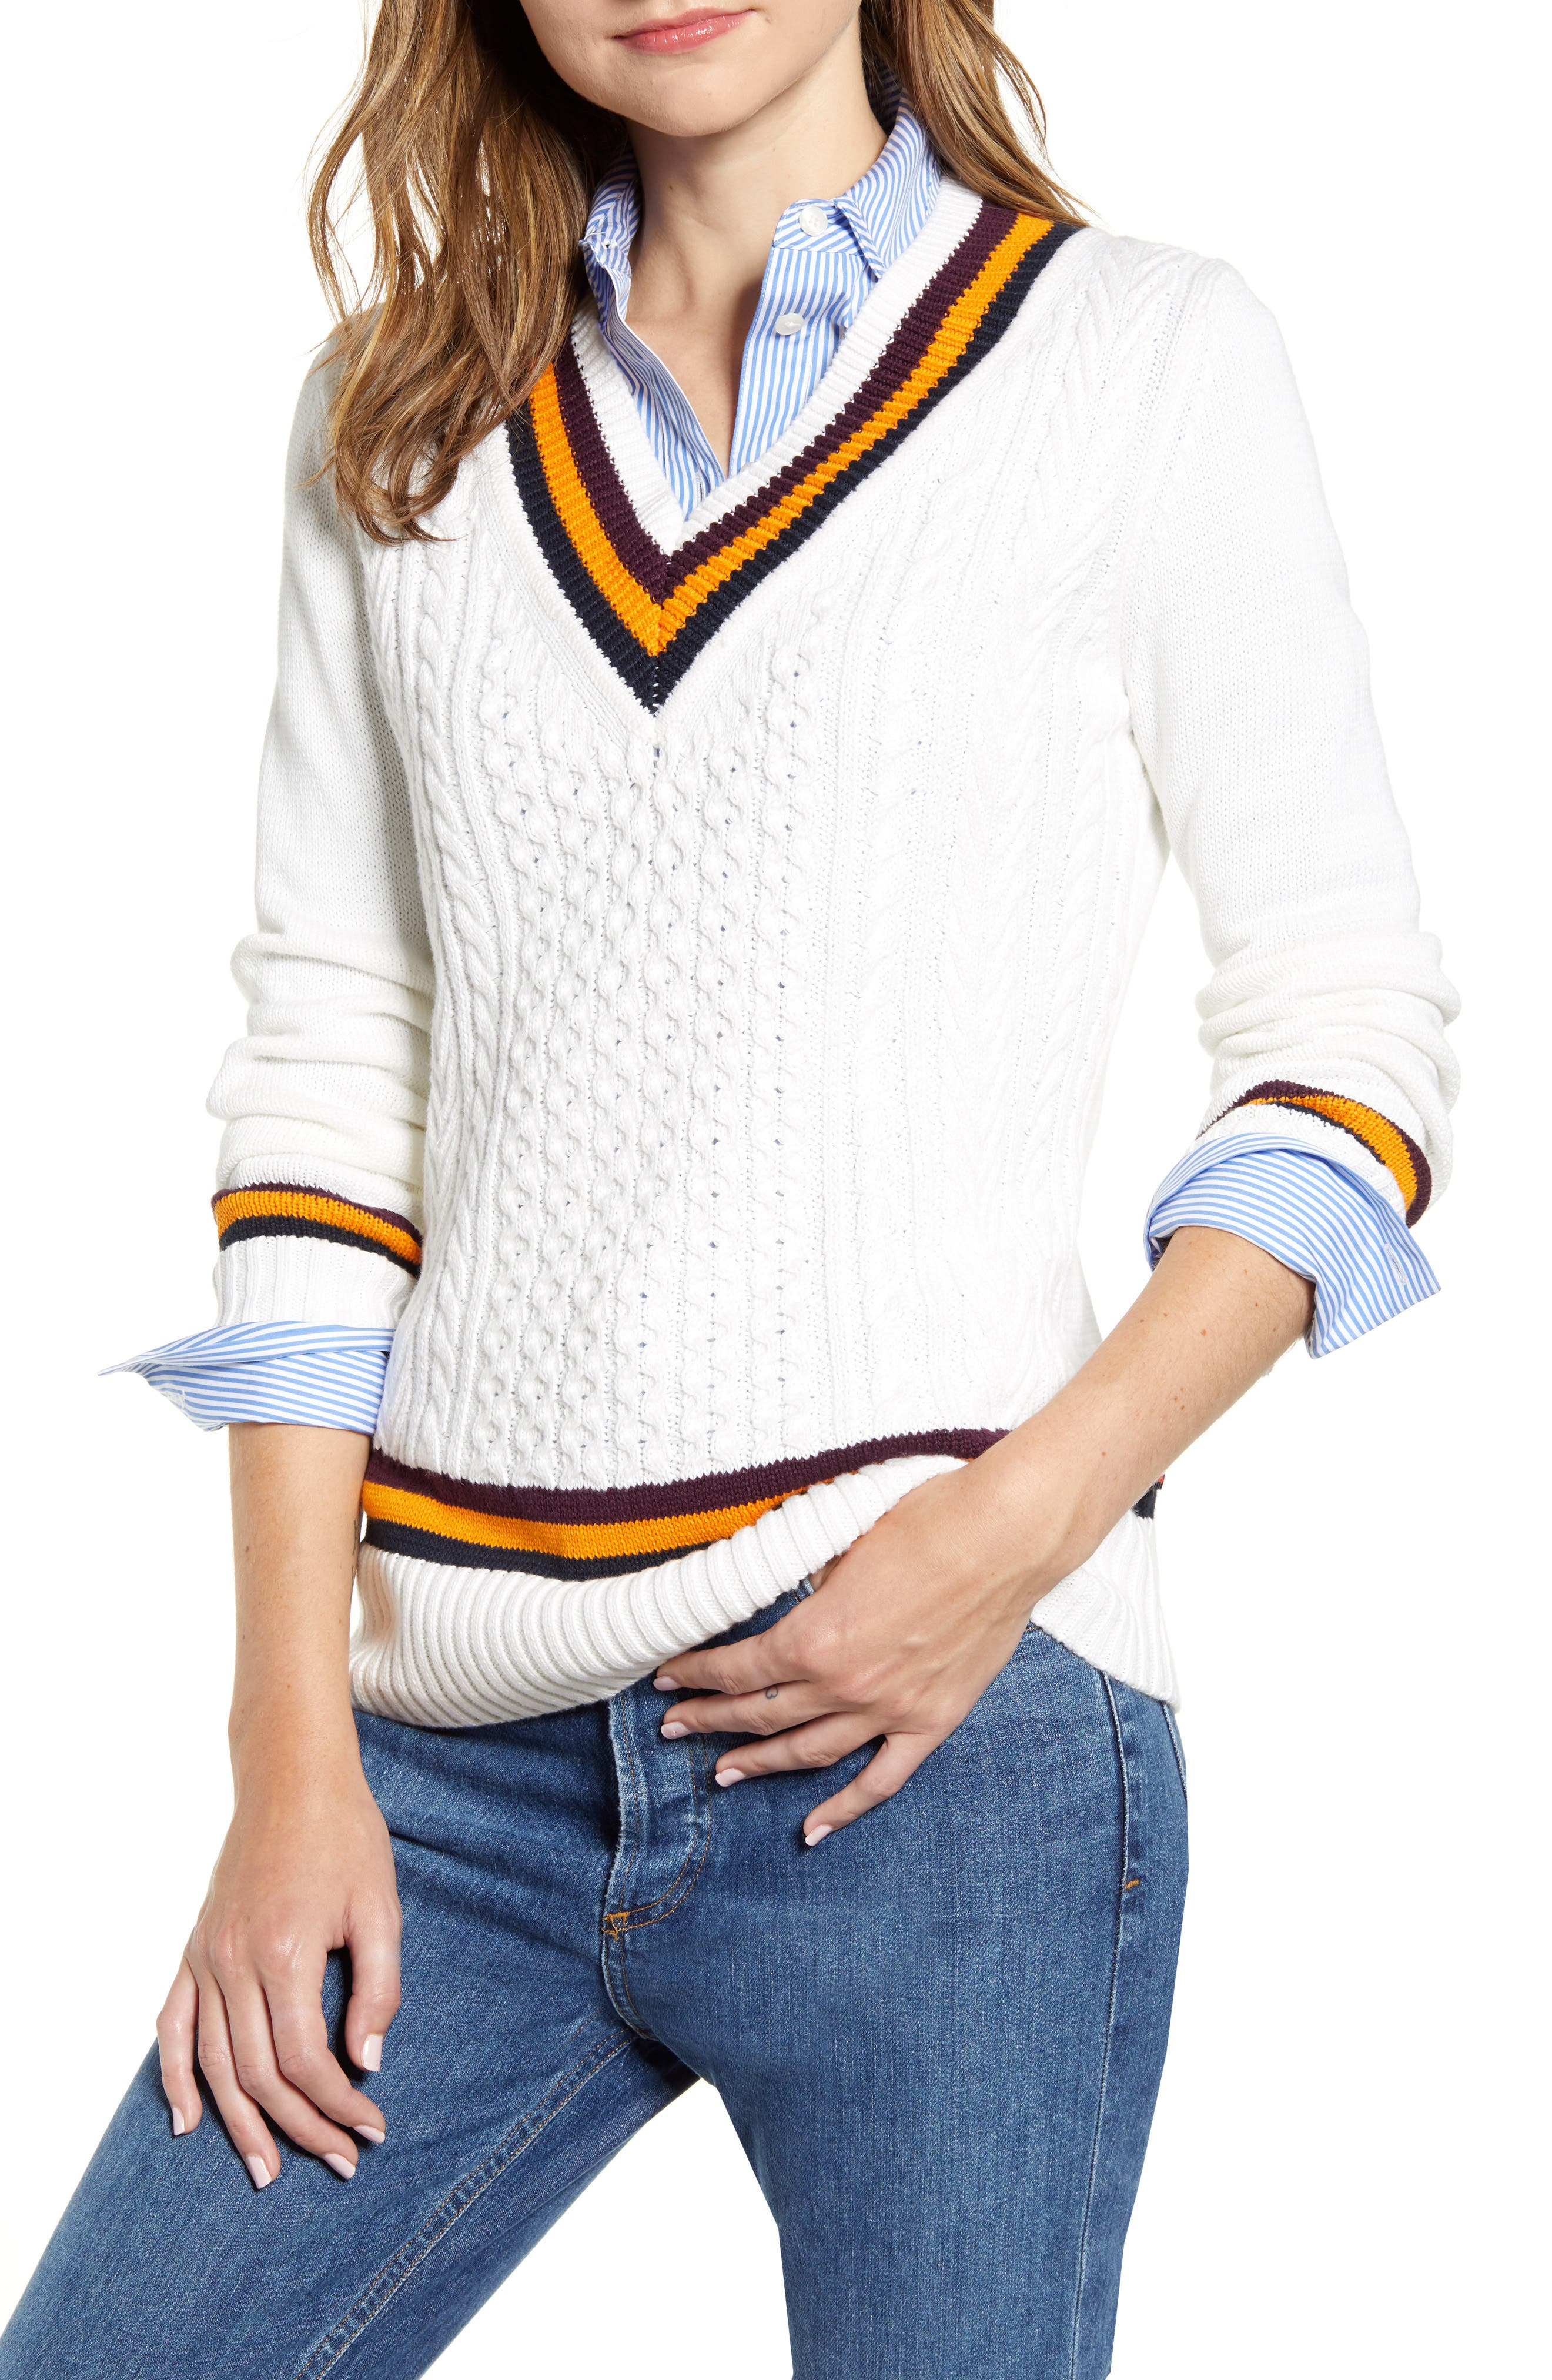 Ladies Colorful 1920s Sweaters and Cardigans History Womens Tommy Hilfiger Tipped V-Neck Varsity Sweater Size X-Small - Ivory $89.00 AT vintagedancer.com